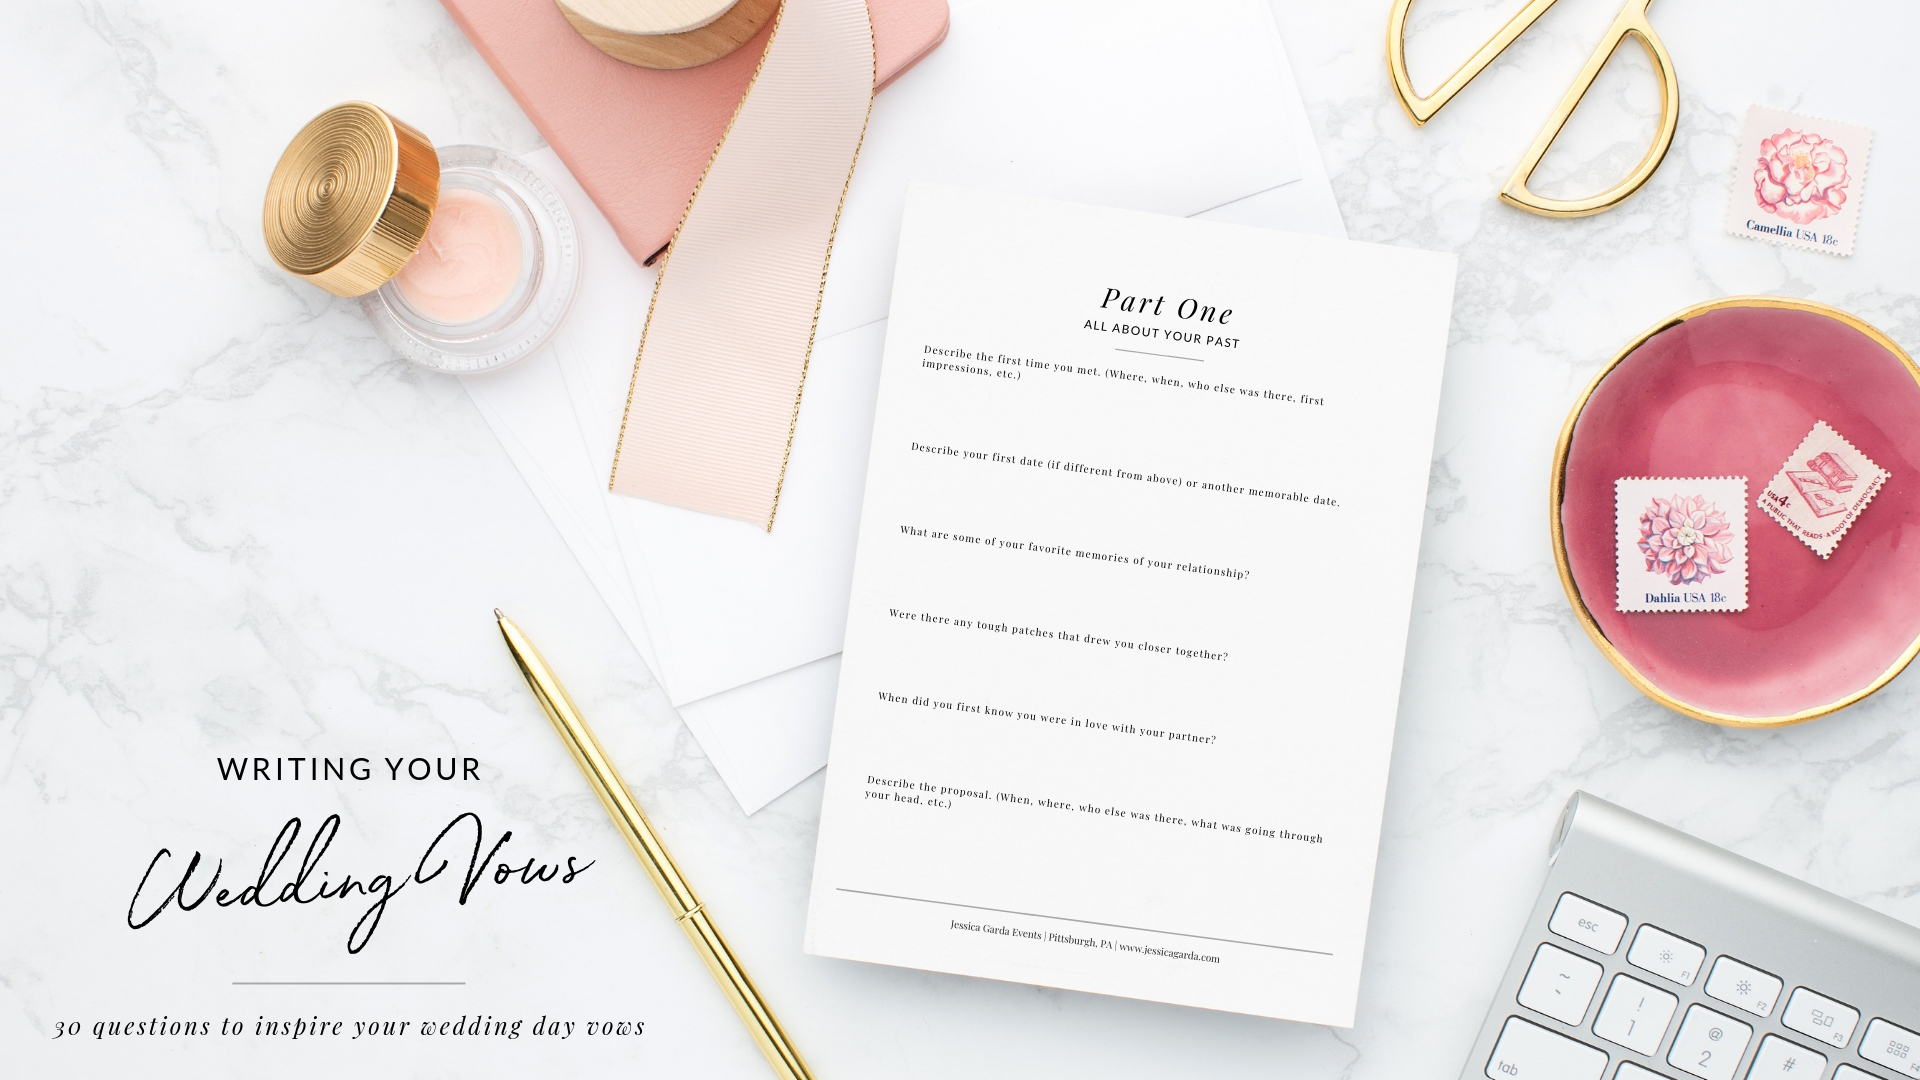 How to write your wedding vows - printable workbook